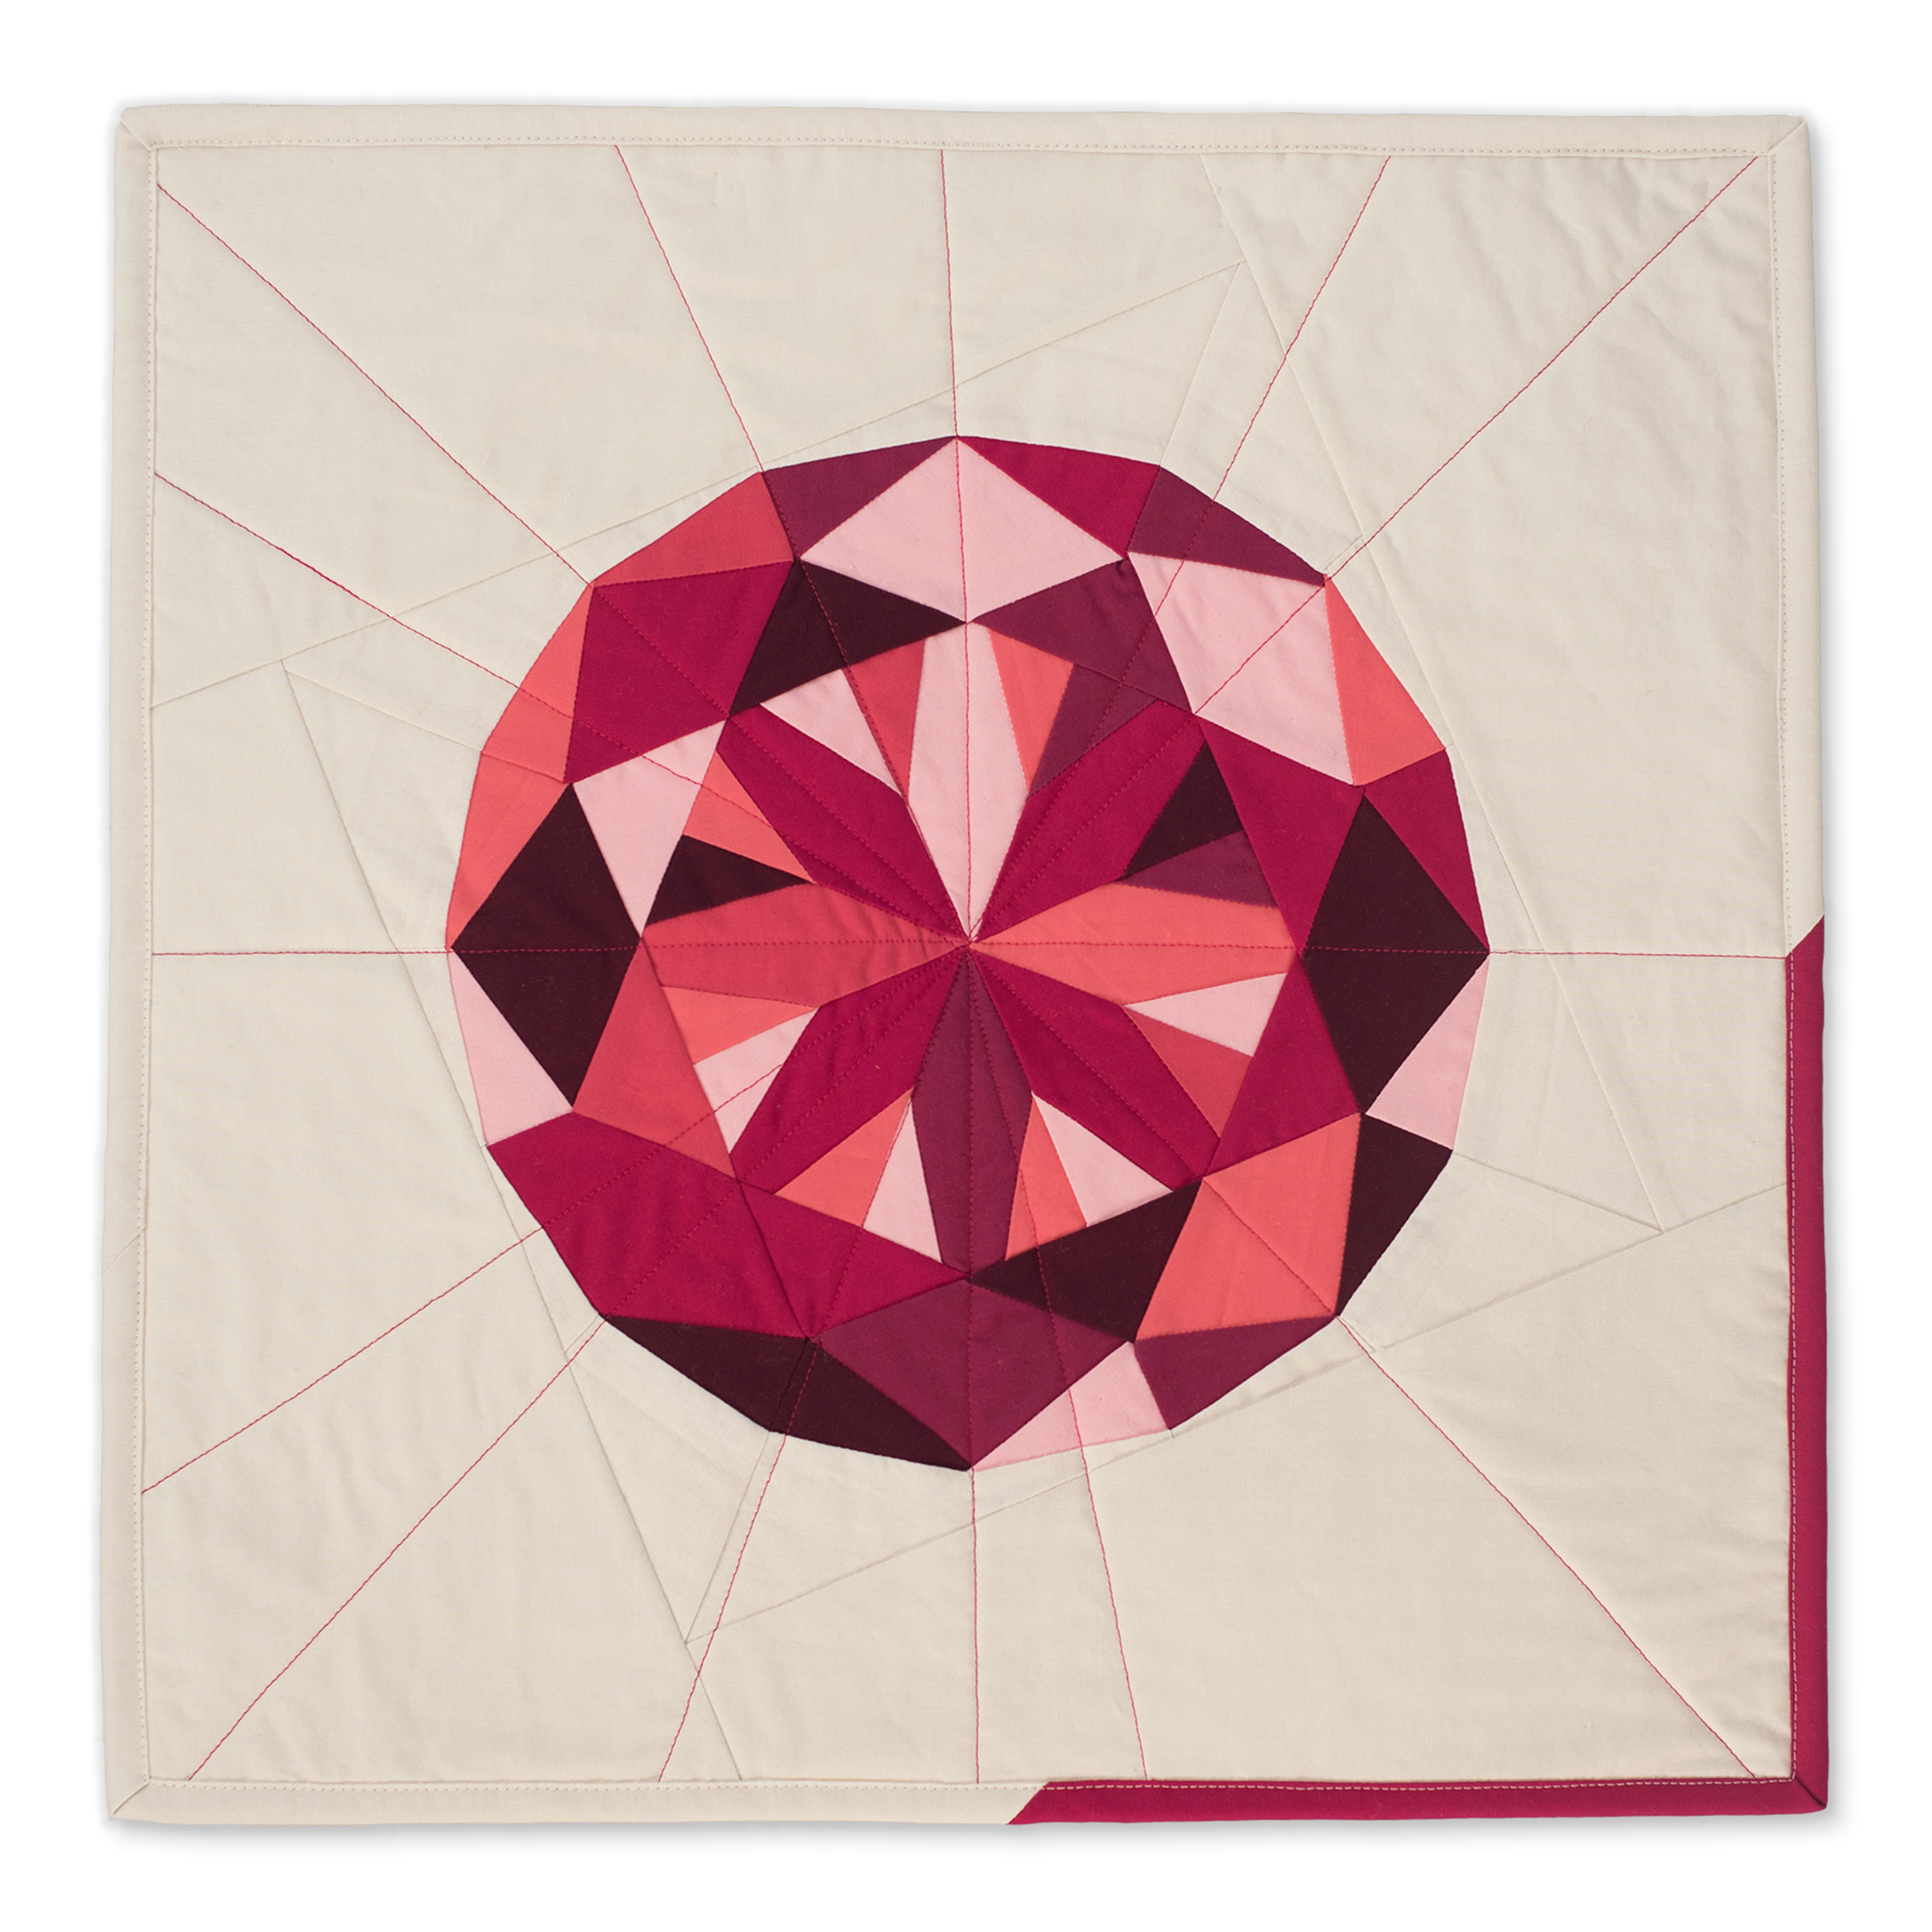 "<b>Ruby</b><br>20"" x 20""<br>Cotton, cotton batting<br><a href=""mailto:hello@3rdstoryworkshop.com?Subject=Ruby%20Gemology"" target=""_top"" rel=""noopener noreferrer"">Inquire</a>"